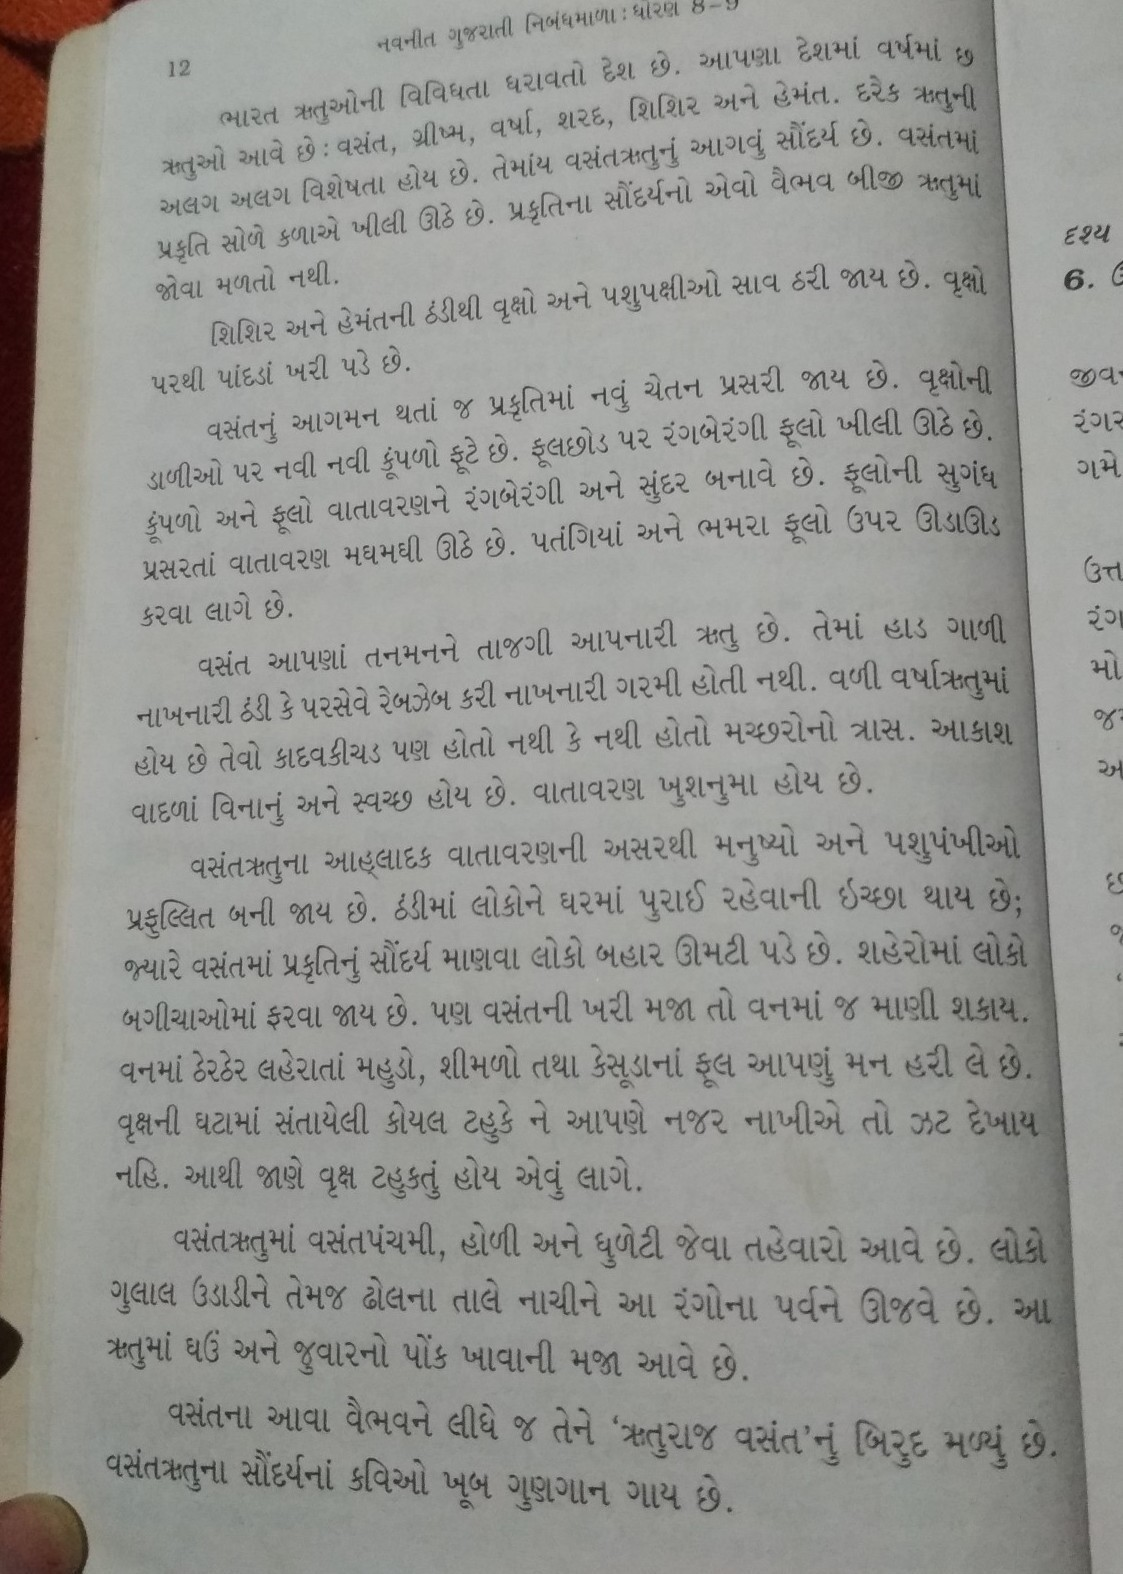 Essay On Science And Society Three Paragraph Essay On Vasant Rutu In Gujarati Language Brainly Essay About Learning English also Examples Of An Essay Paper Gujarati Essay In Gujarati Language  Mistyhamel High School Scholarship Essay Examples